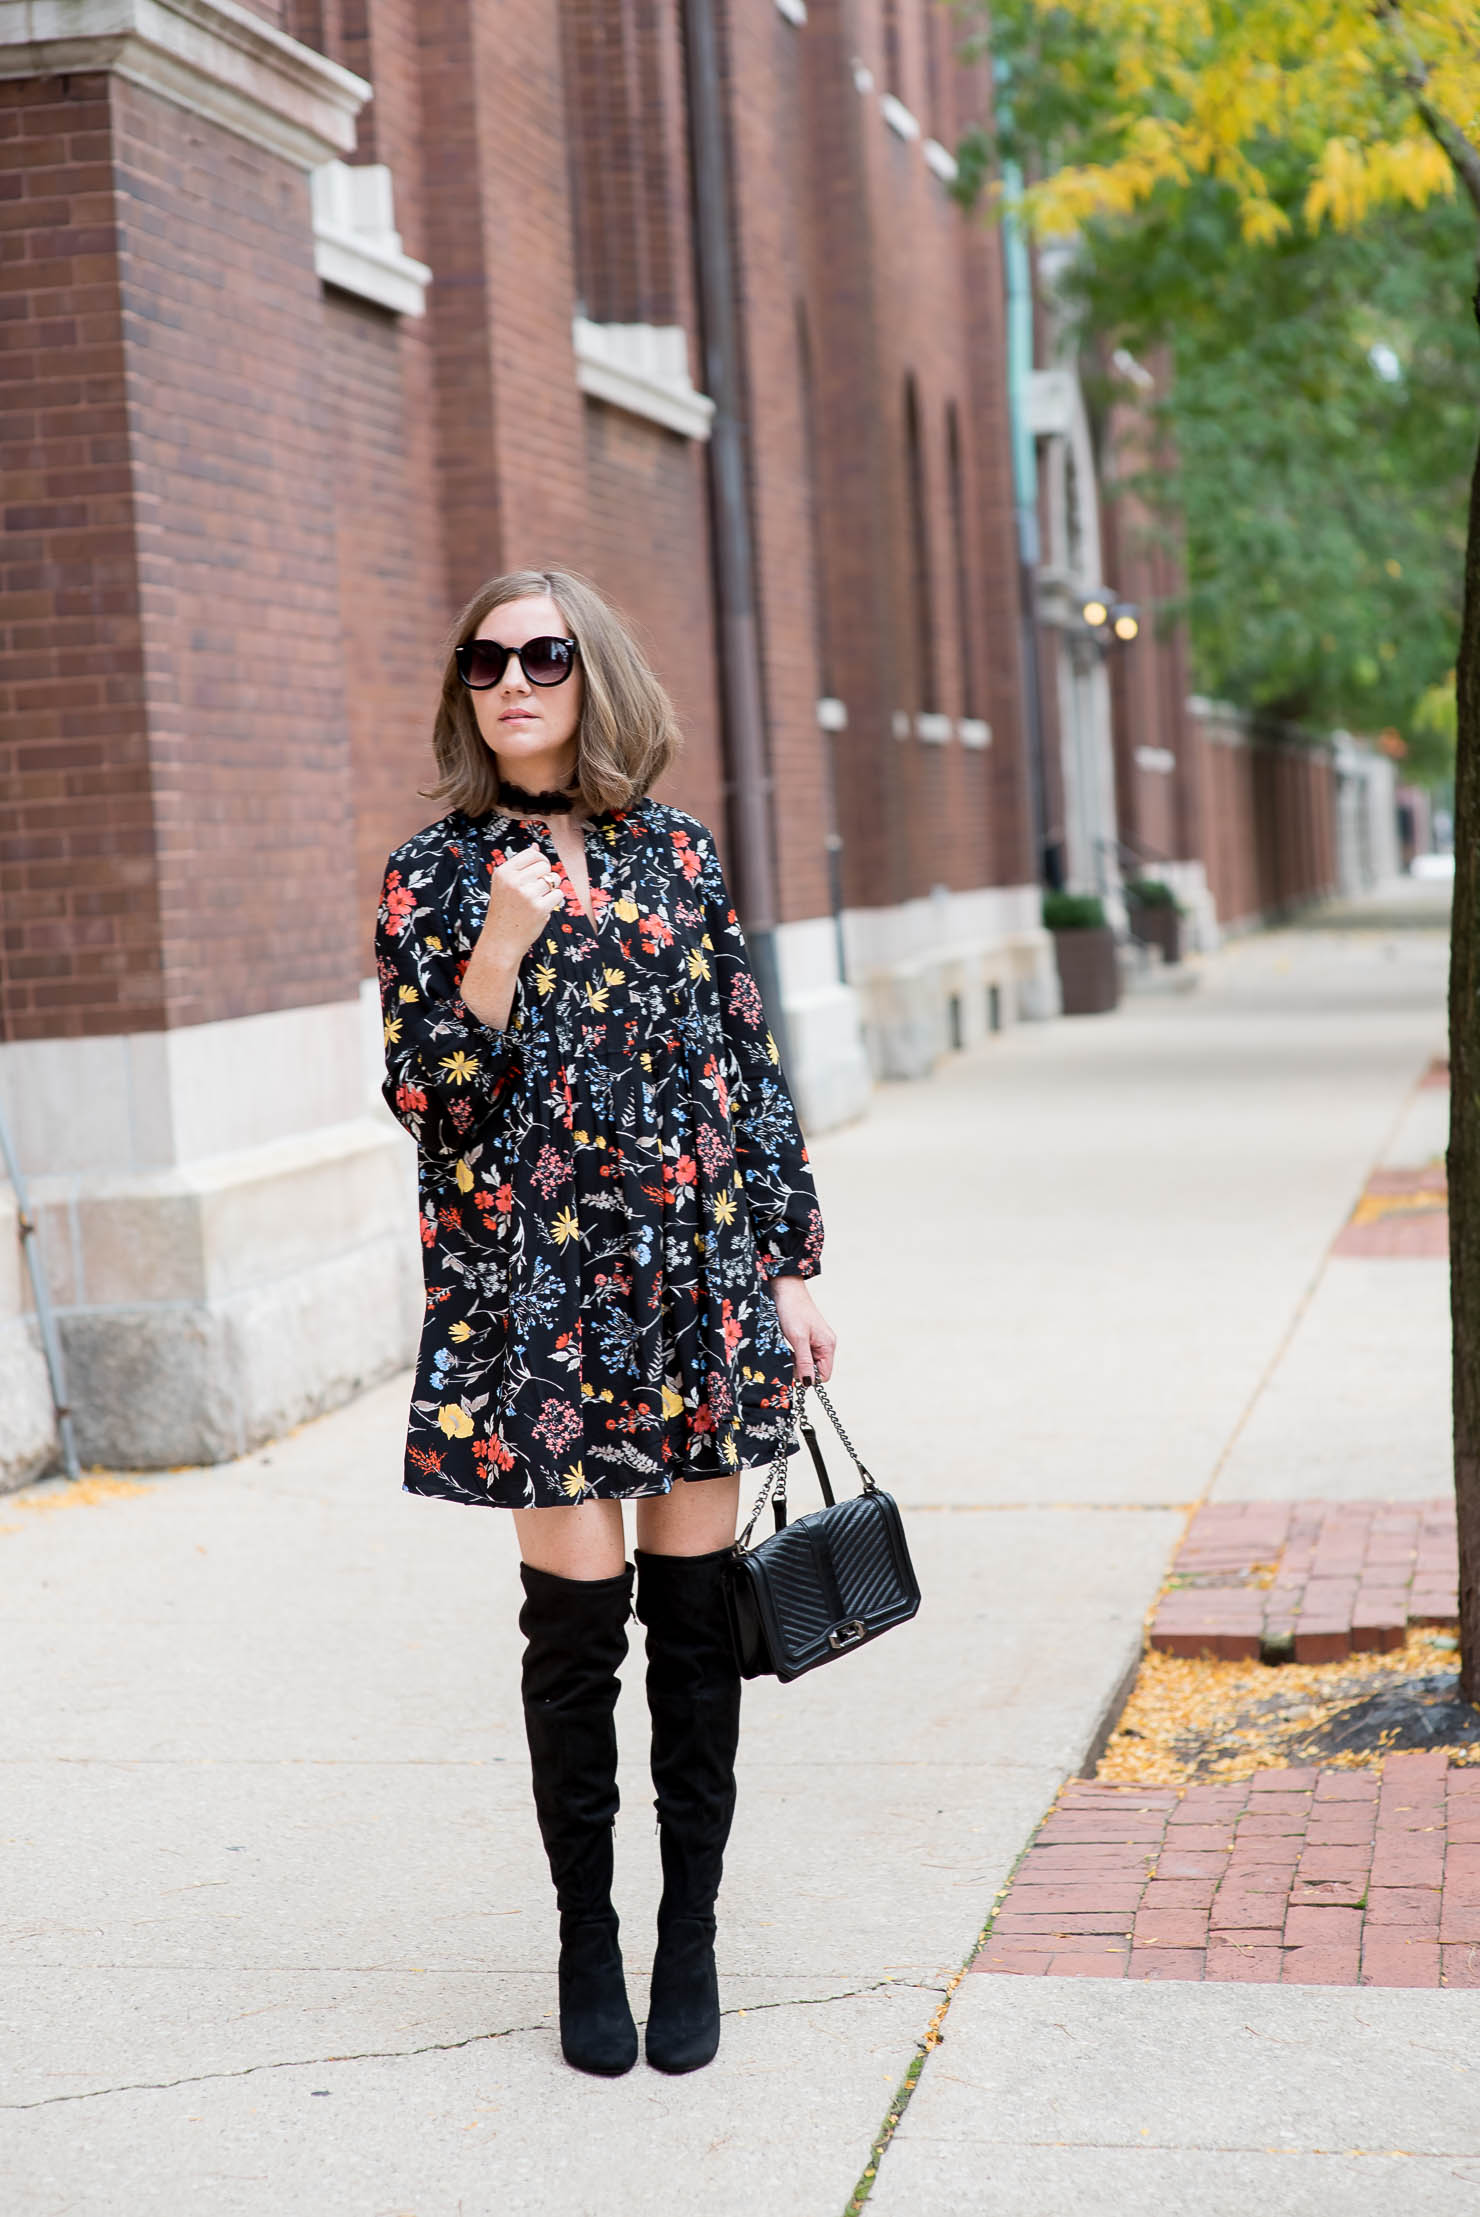 old-navy-dark-floral-tunic-dress-over-th-knee-boots-ruffle-choker-dressing-up-a-casual-dress-how-to-make-an-inexpensive-dress-look-expensive